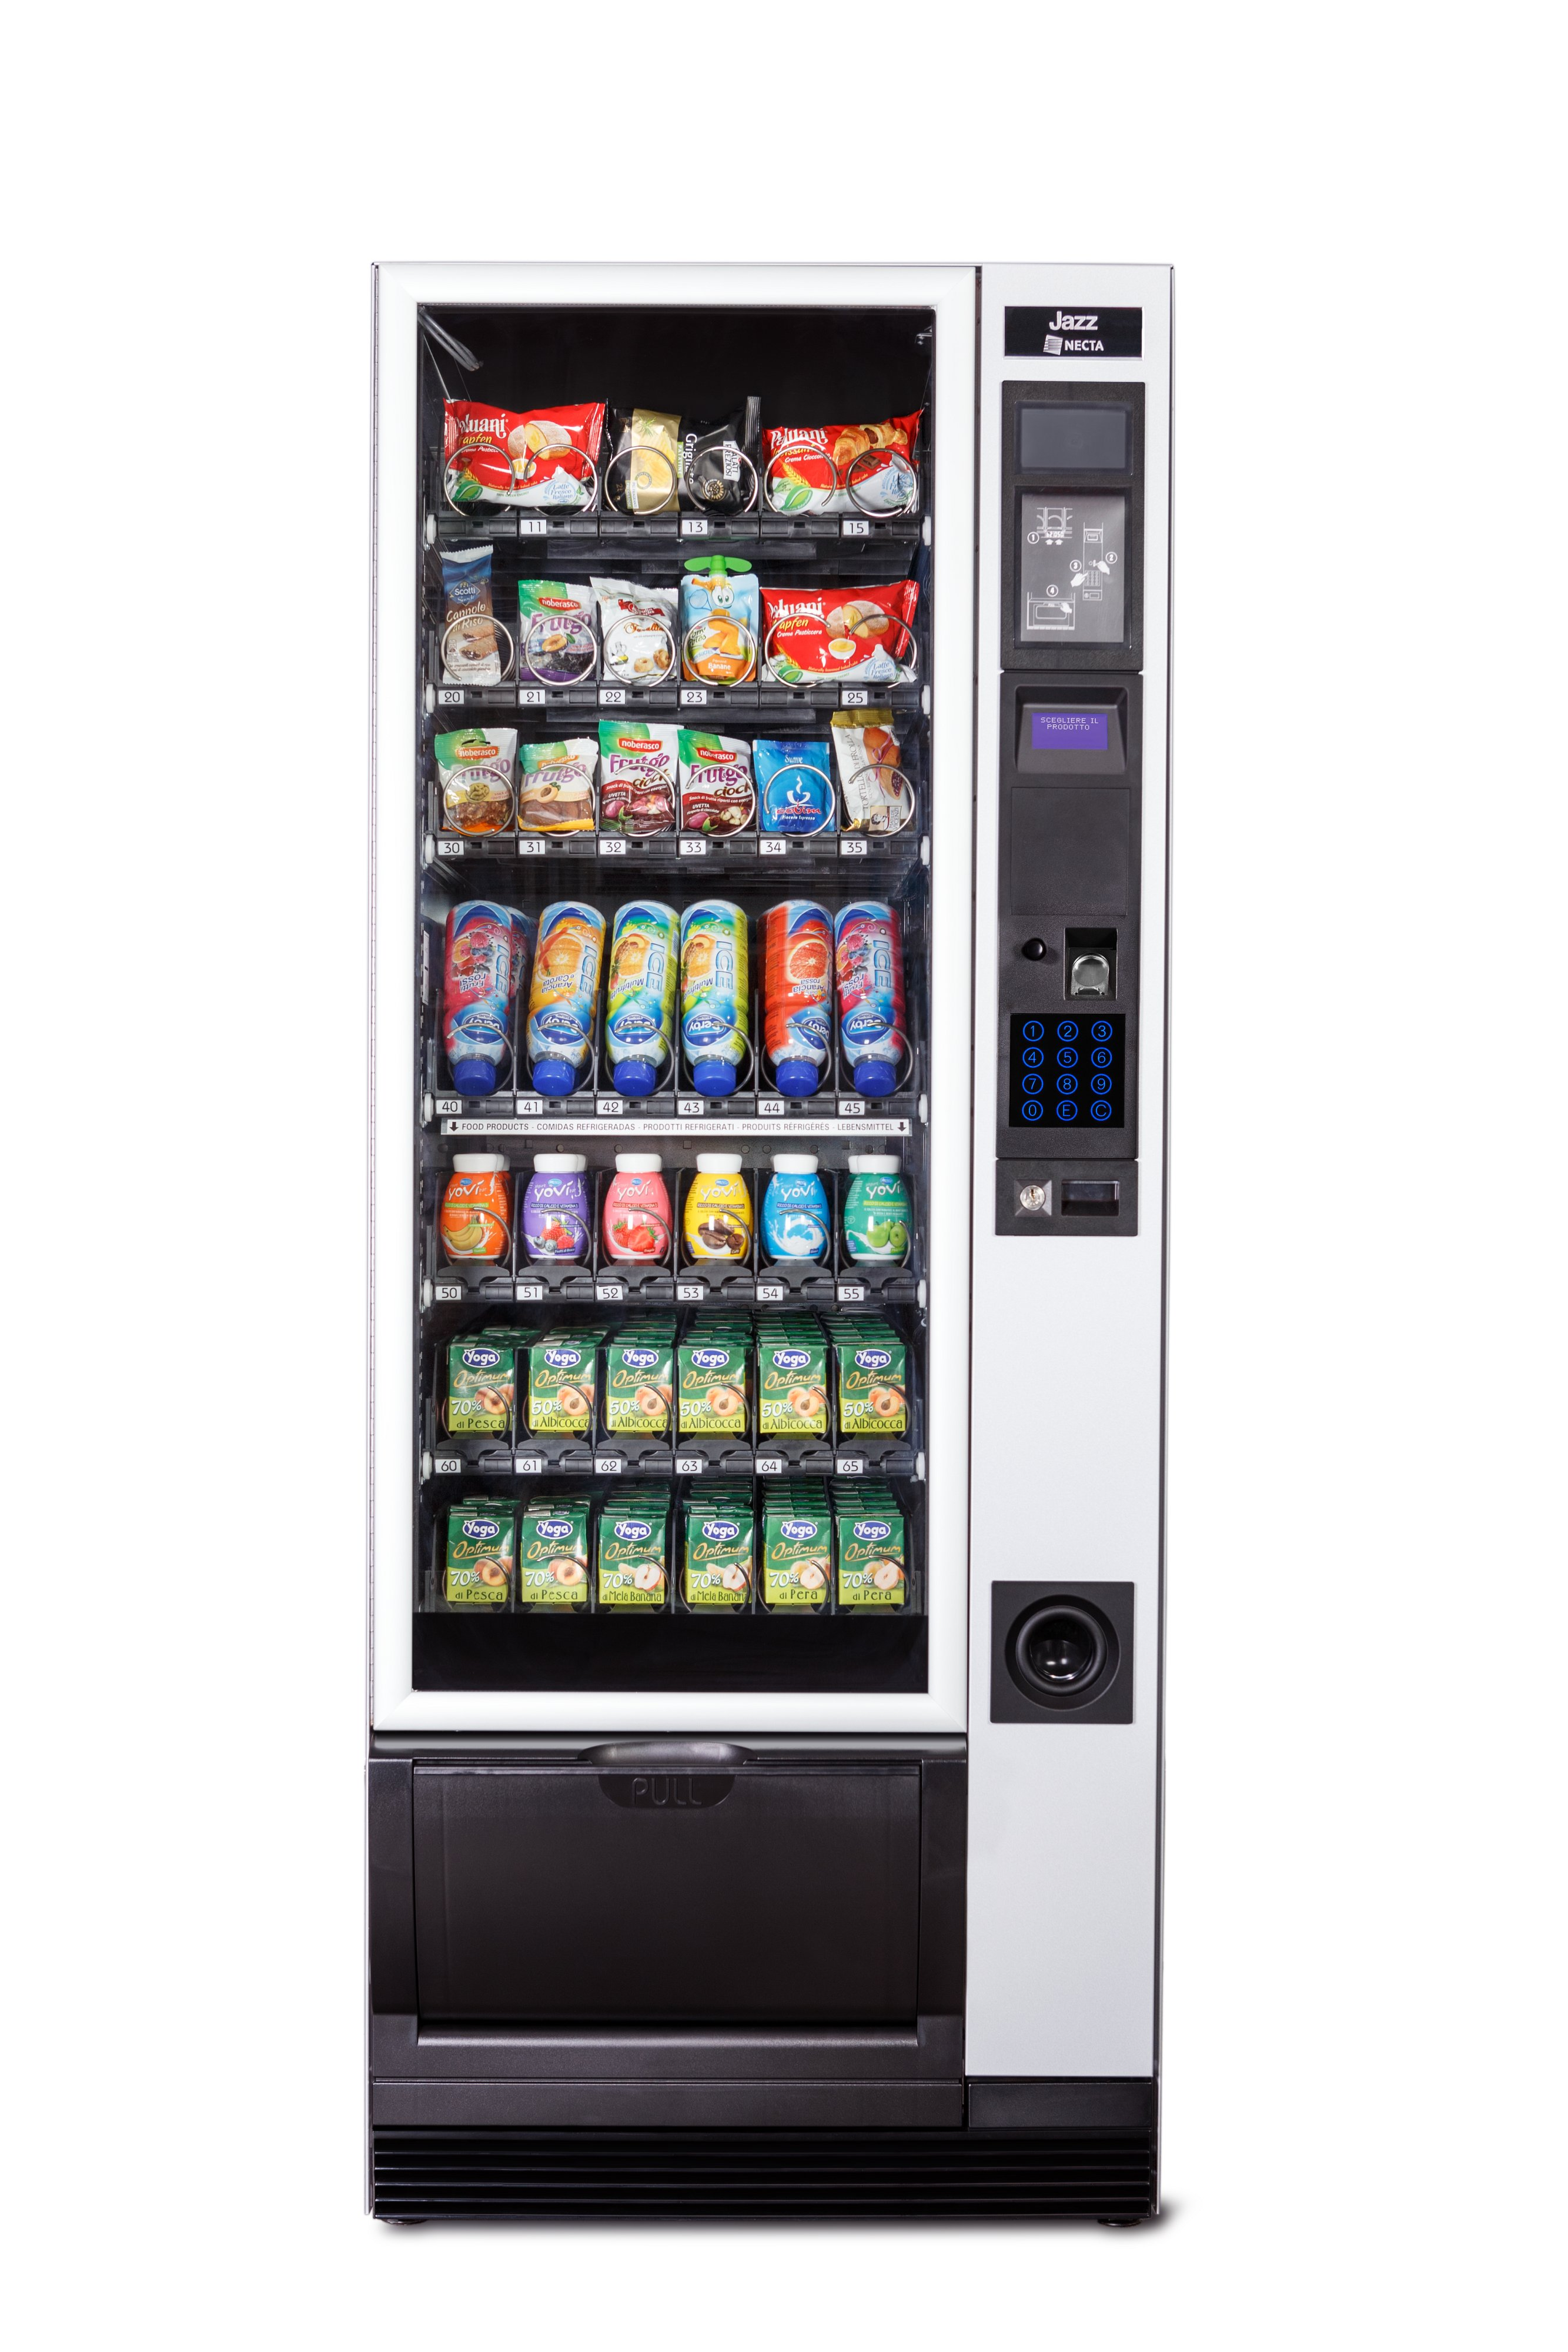 established-mobile-vending-business-for-sale-flexible-and-profitable-7